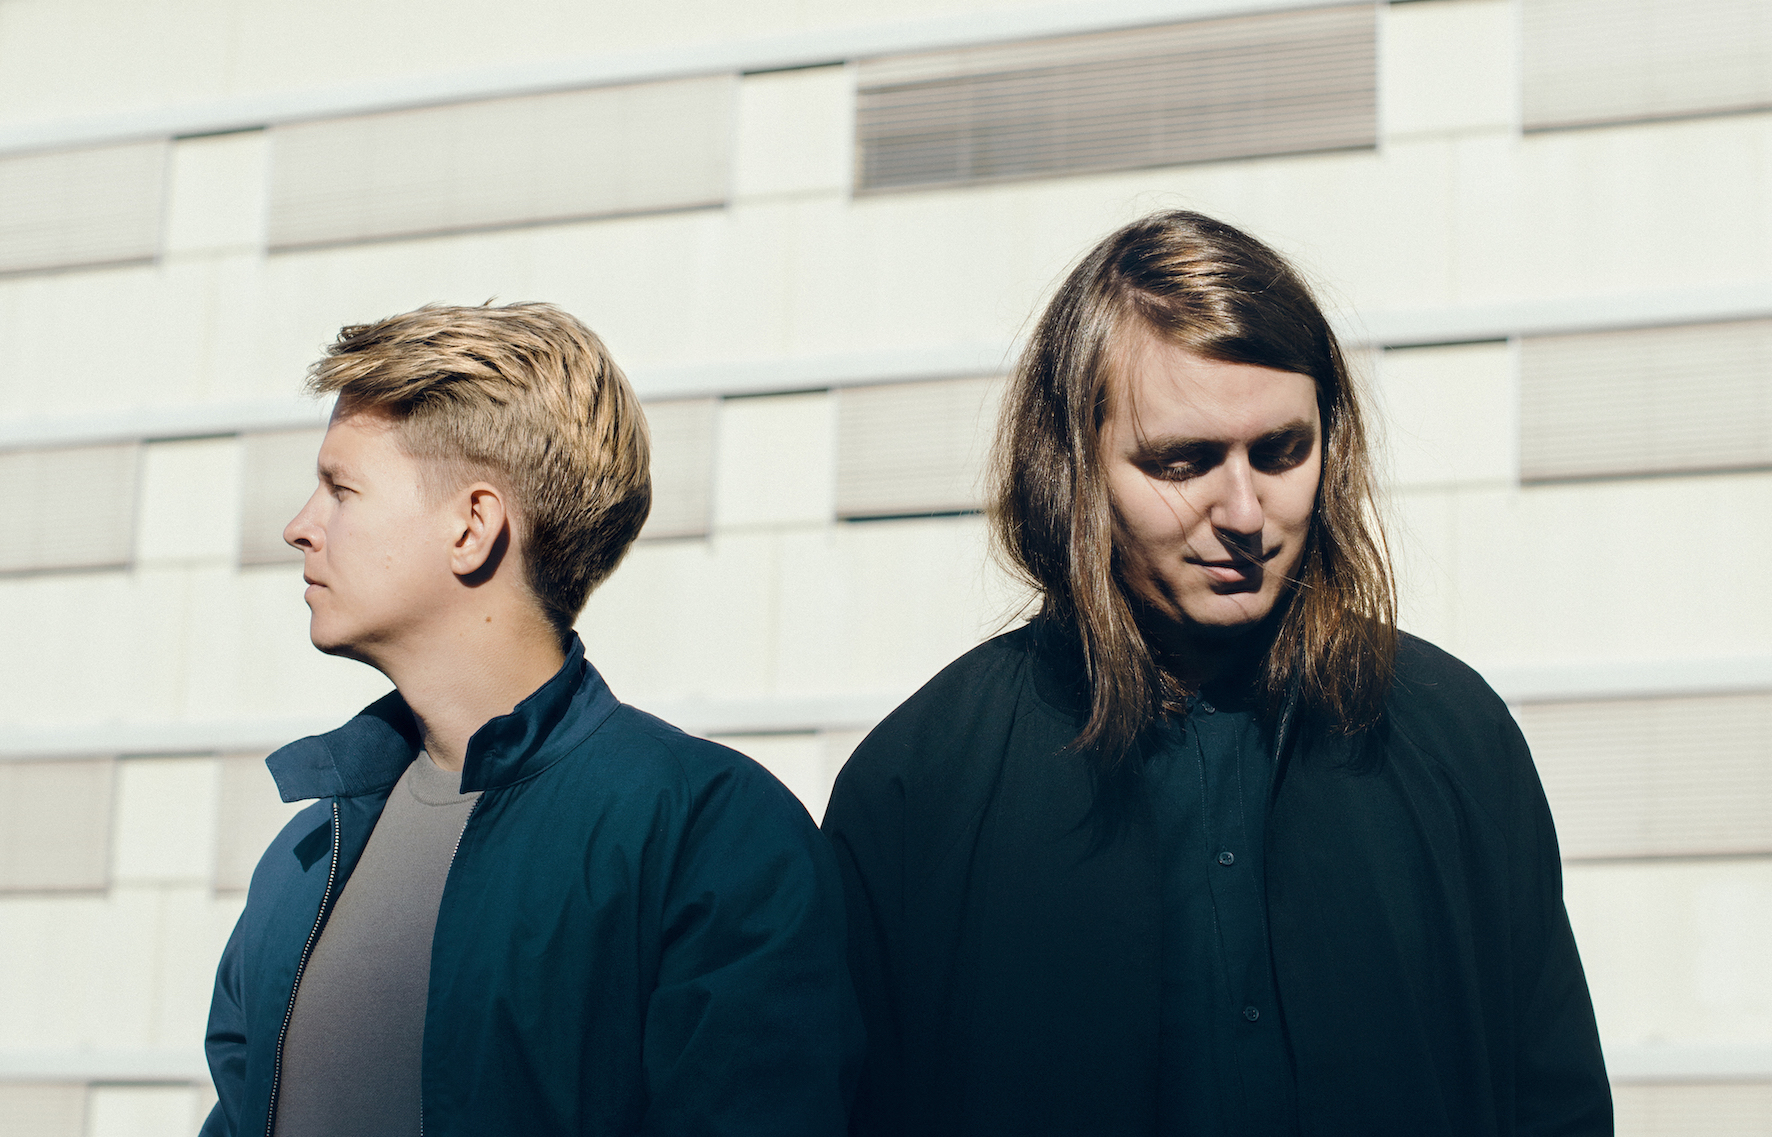 I spoke to one half of Norwegian electro duo Apothek about their festival plans and the reasons why Norway had suddenly started to produce a number of successful international acts